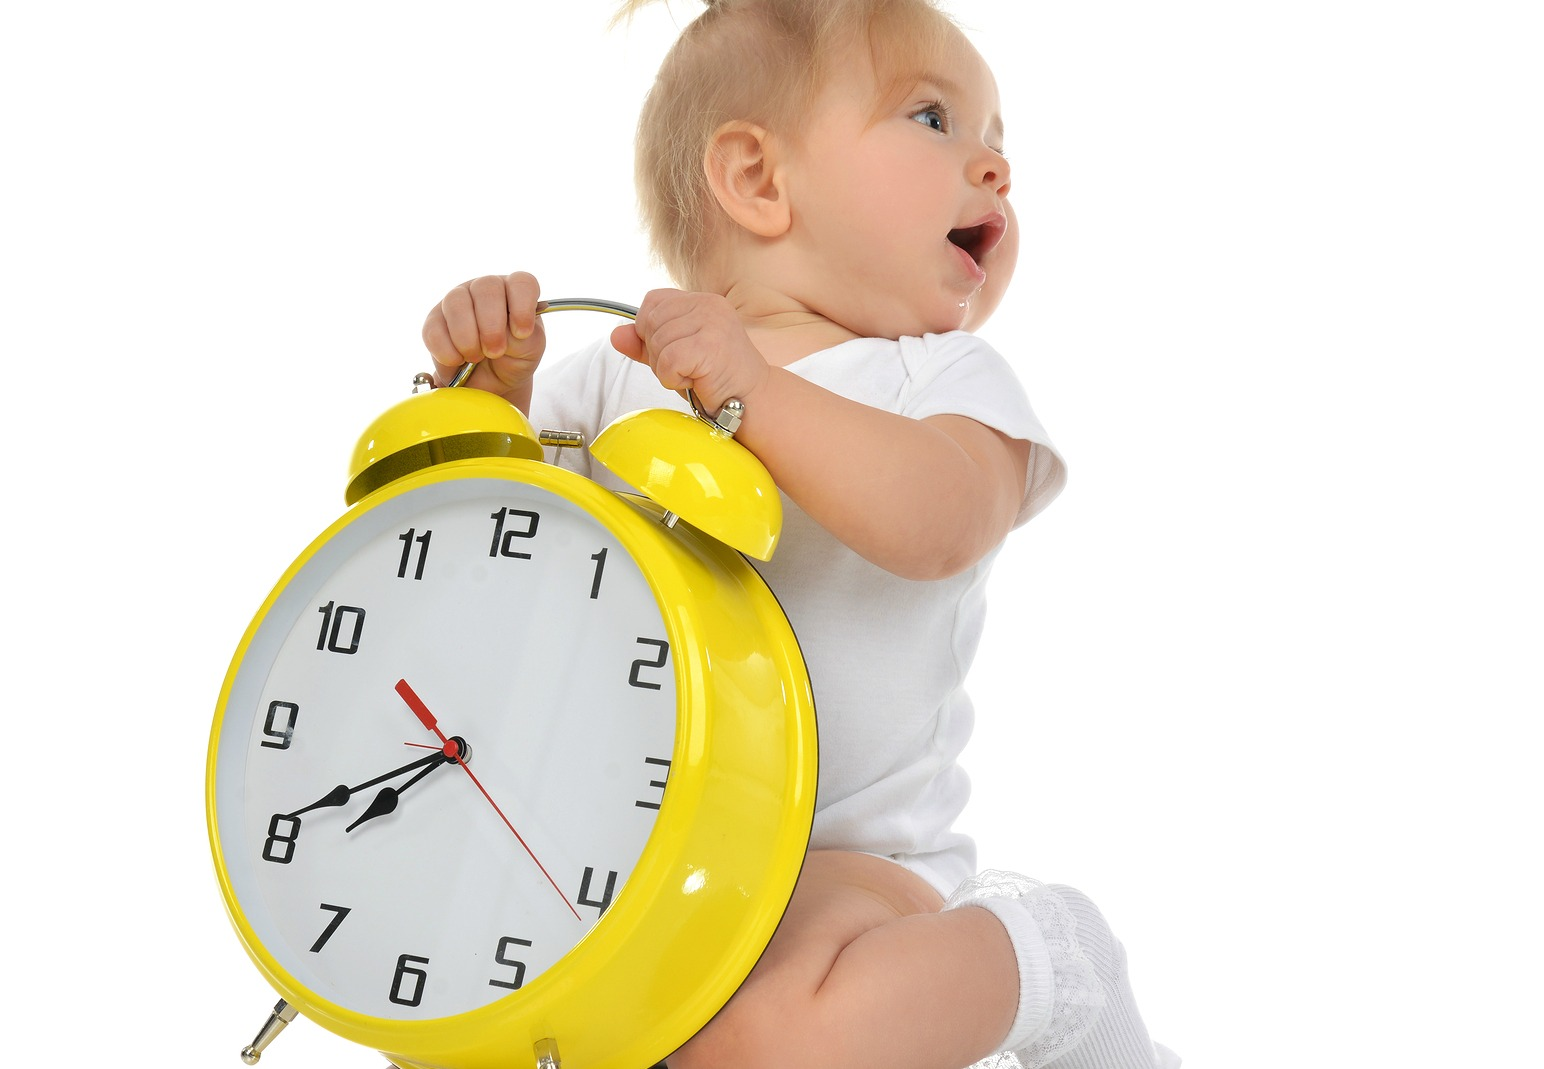 How To Get Your Baby On A Schedule